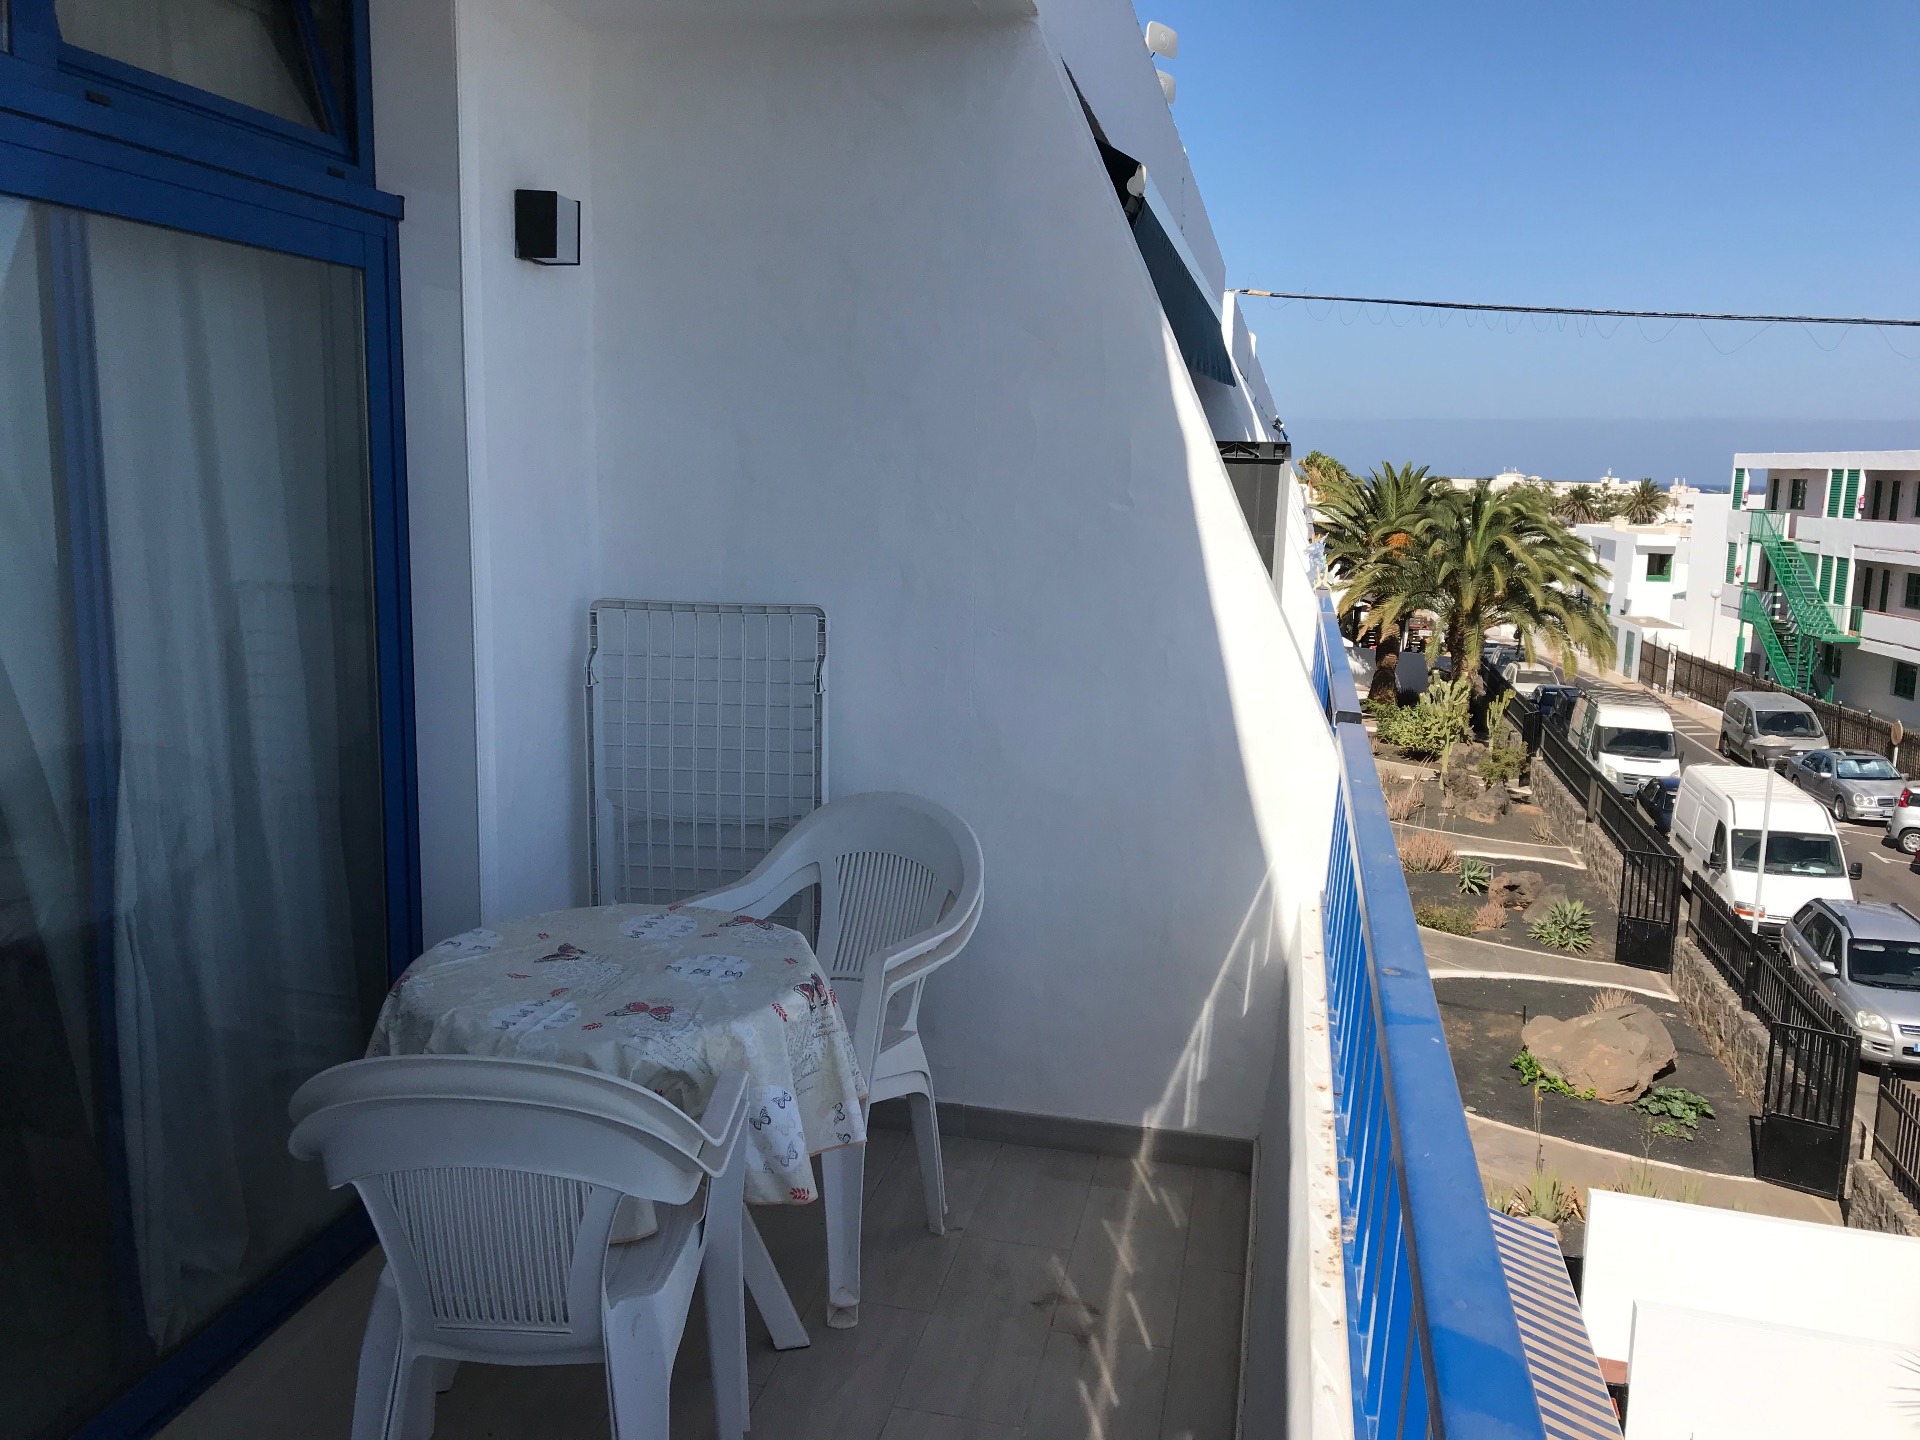 Apartment in Tías, Puerto del carmen, for rent